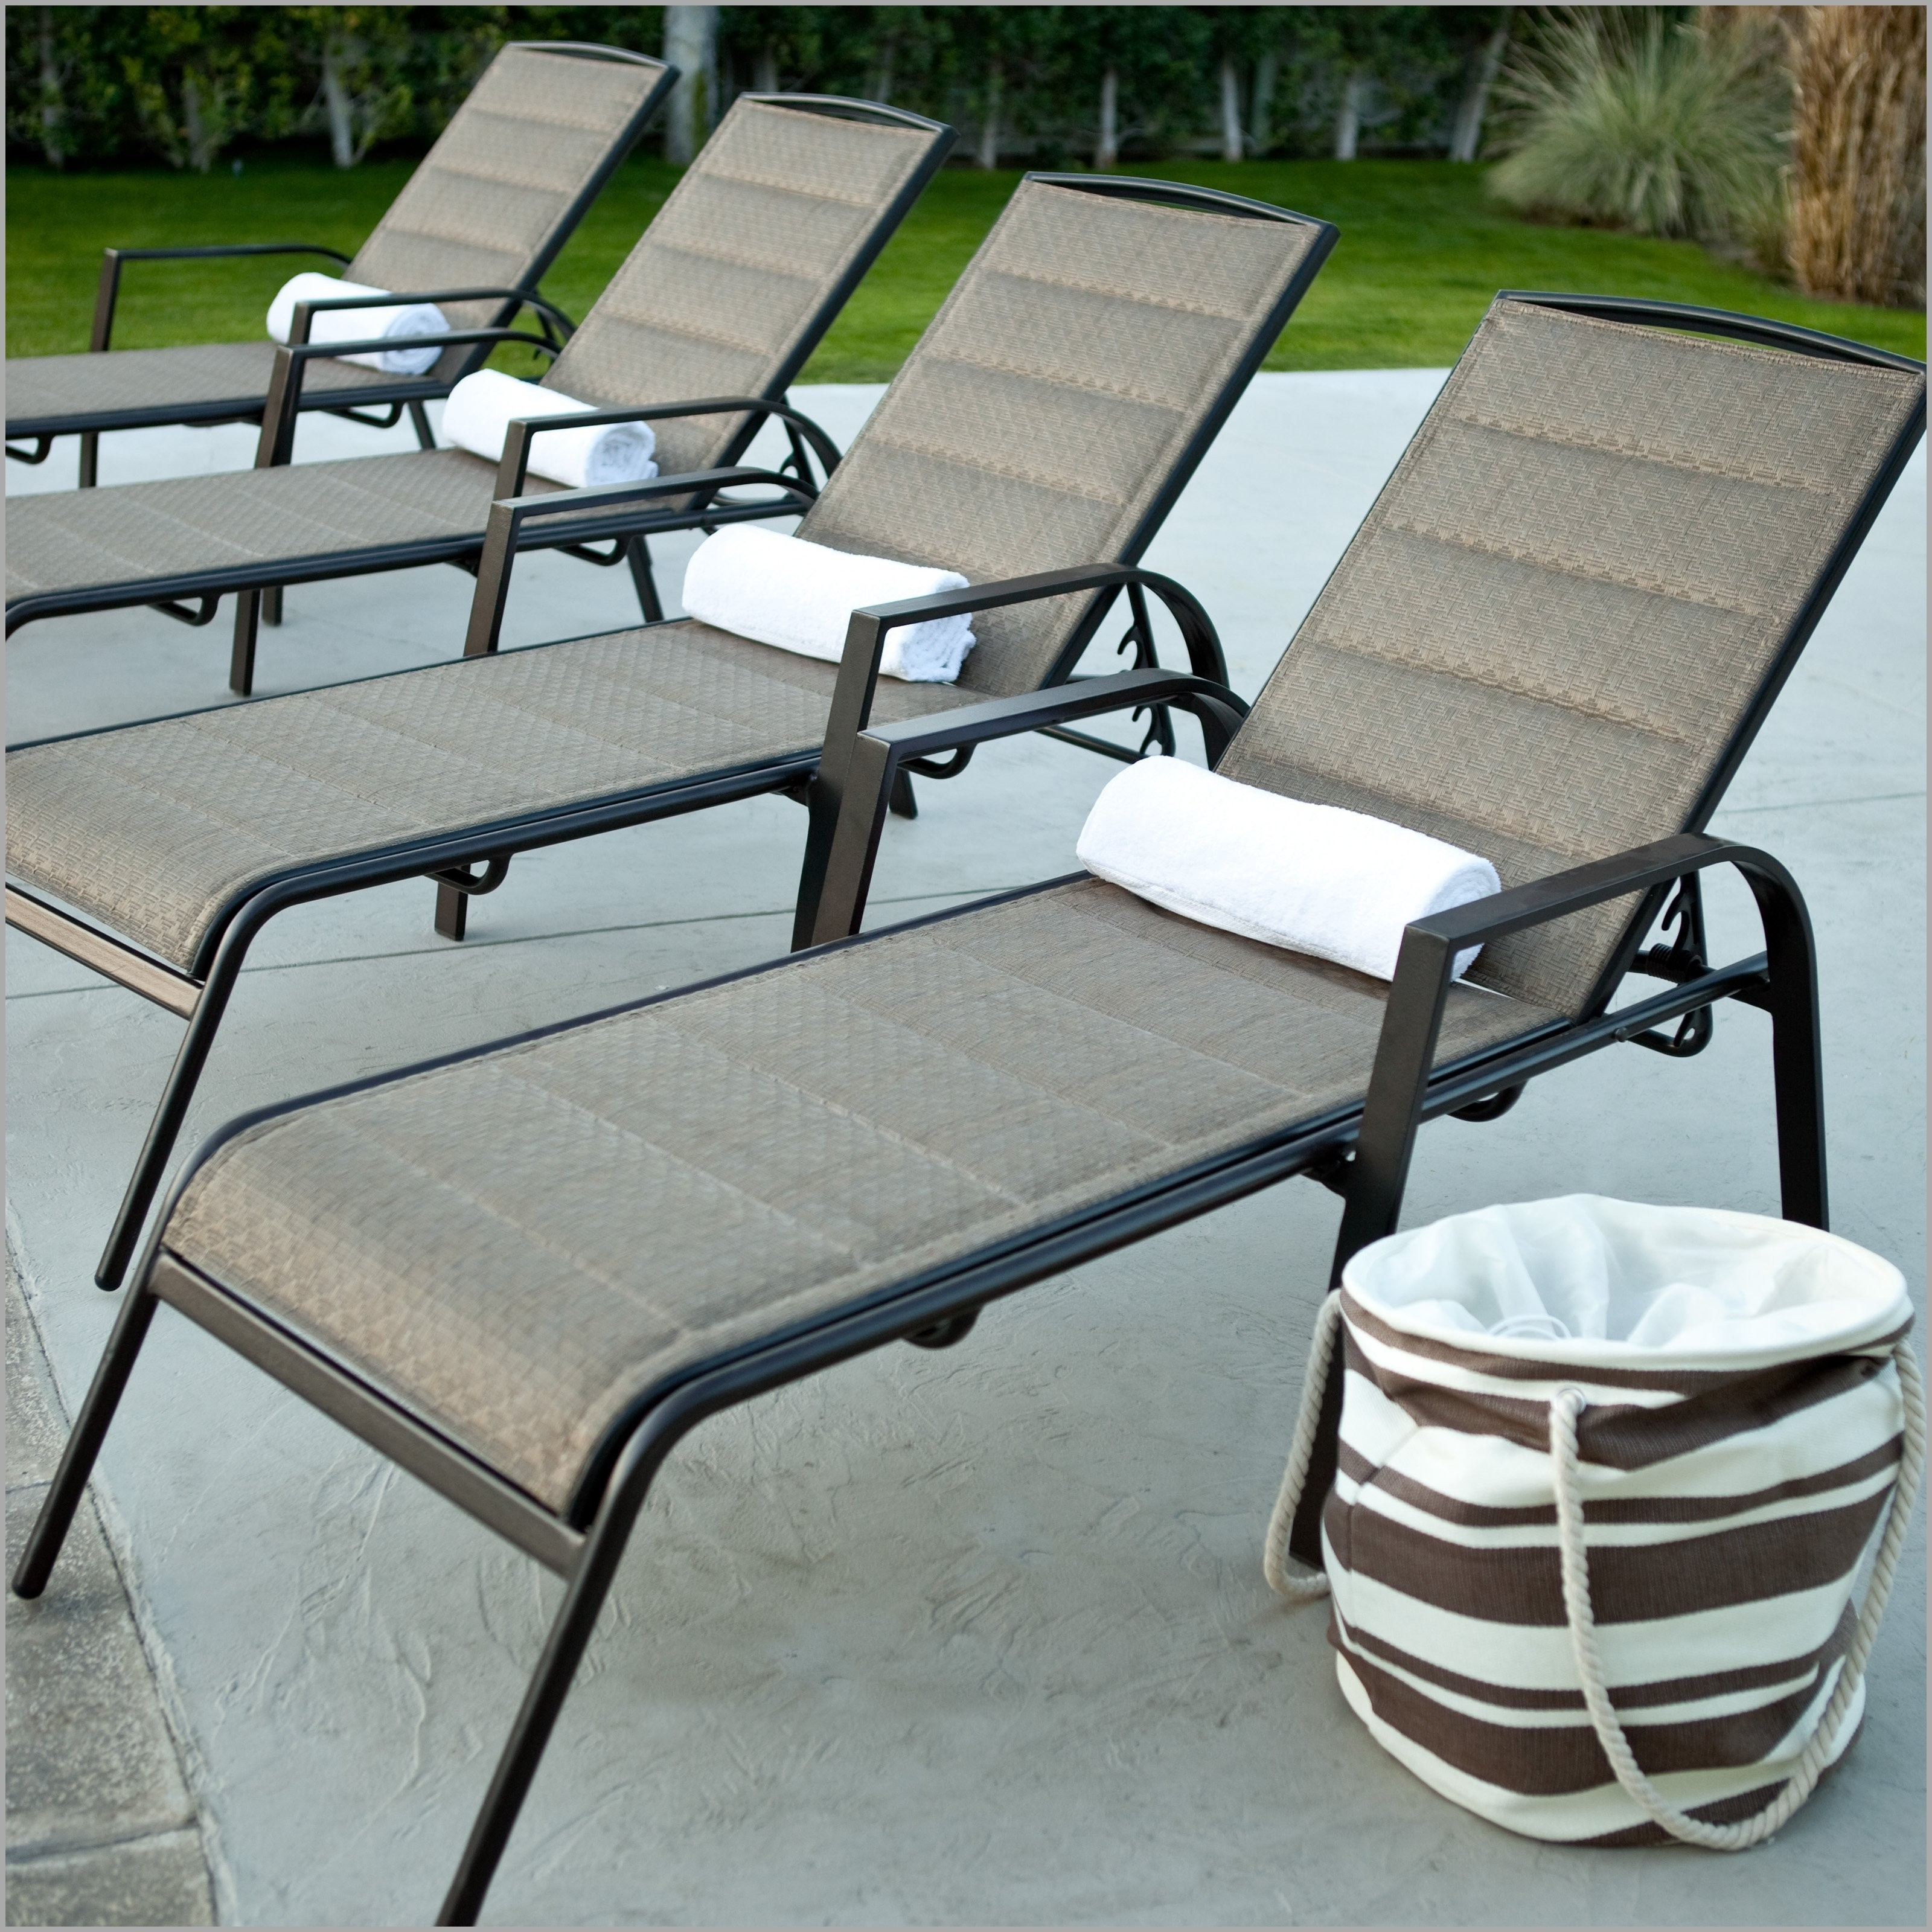 Extraordinary Pool Chaise Lounge Chairs Decorative 600357 – Chair With Favorite Chaise Lounge Chairs For Poolside (View 6 of 15)